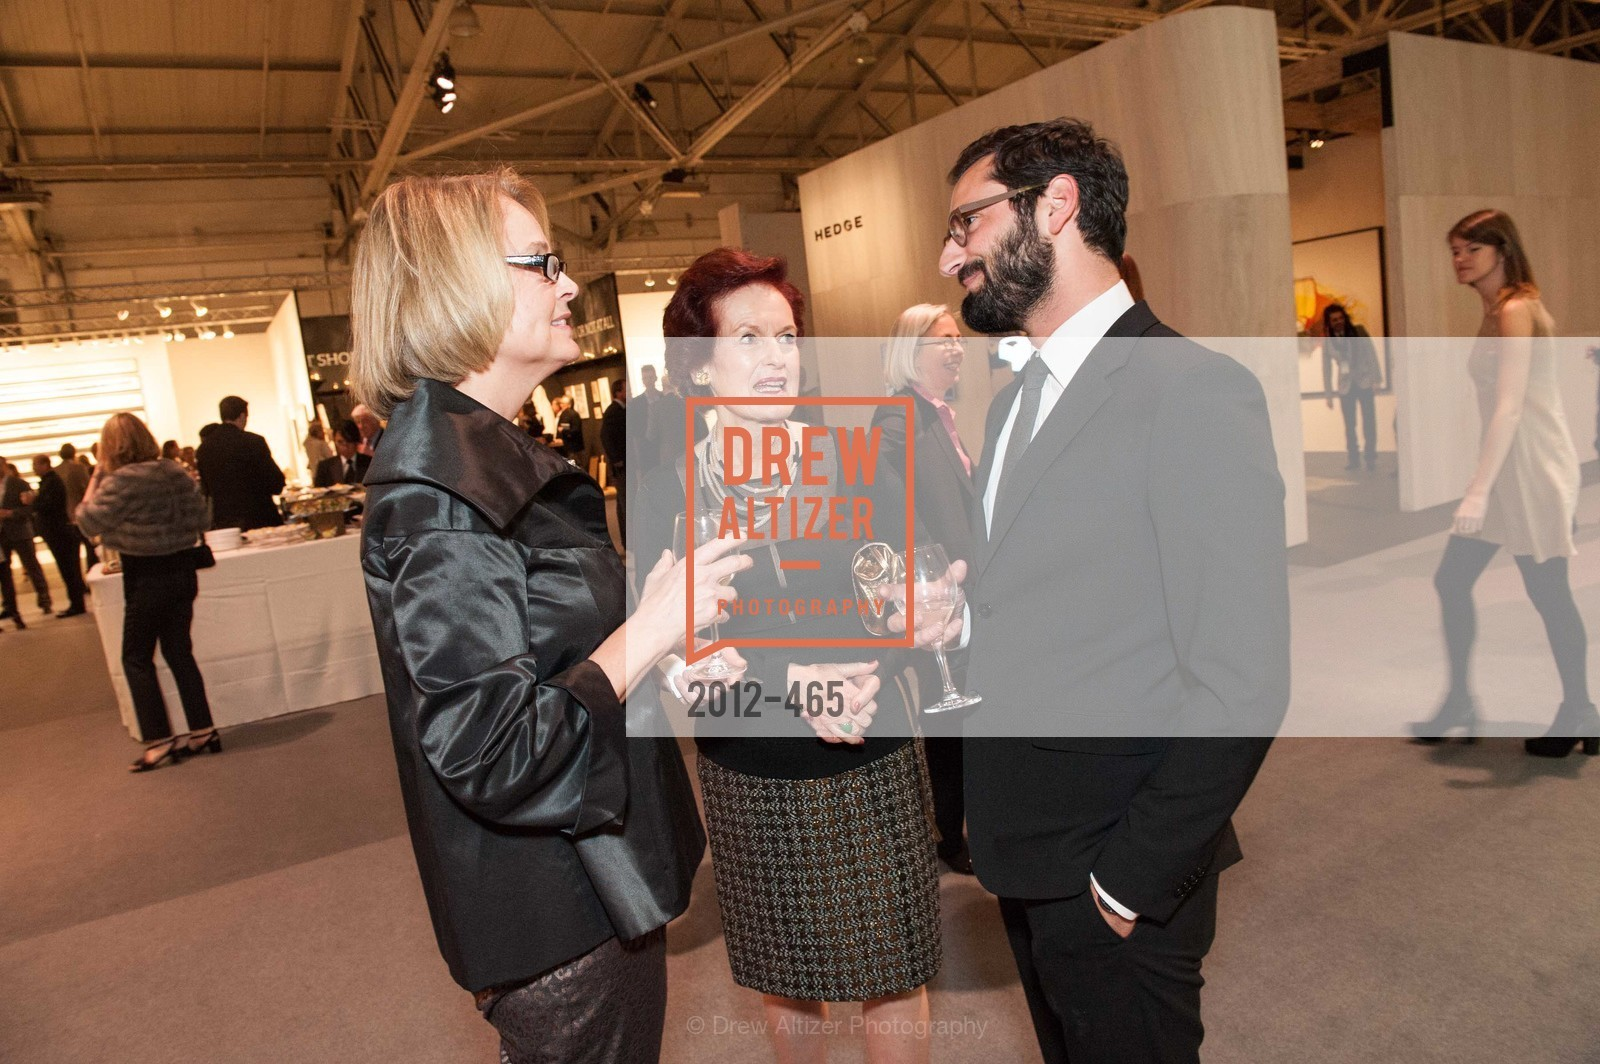 Helen Hilton Raiser, Joseph Becker, FOG Design + Art Preview Gala, US. US, January 16th, 2014,Drew Altizer, Drew Altizer Photography, full-service agency, private events, San Francisco photographer, photographer california